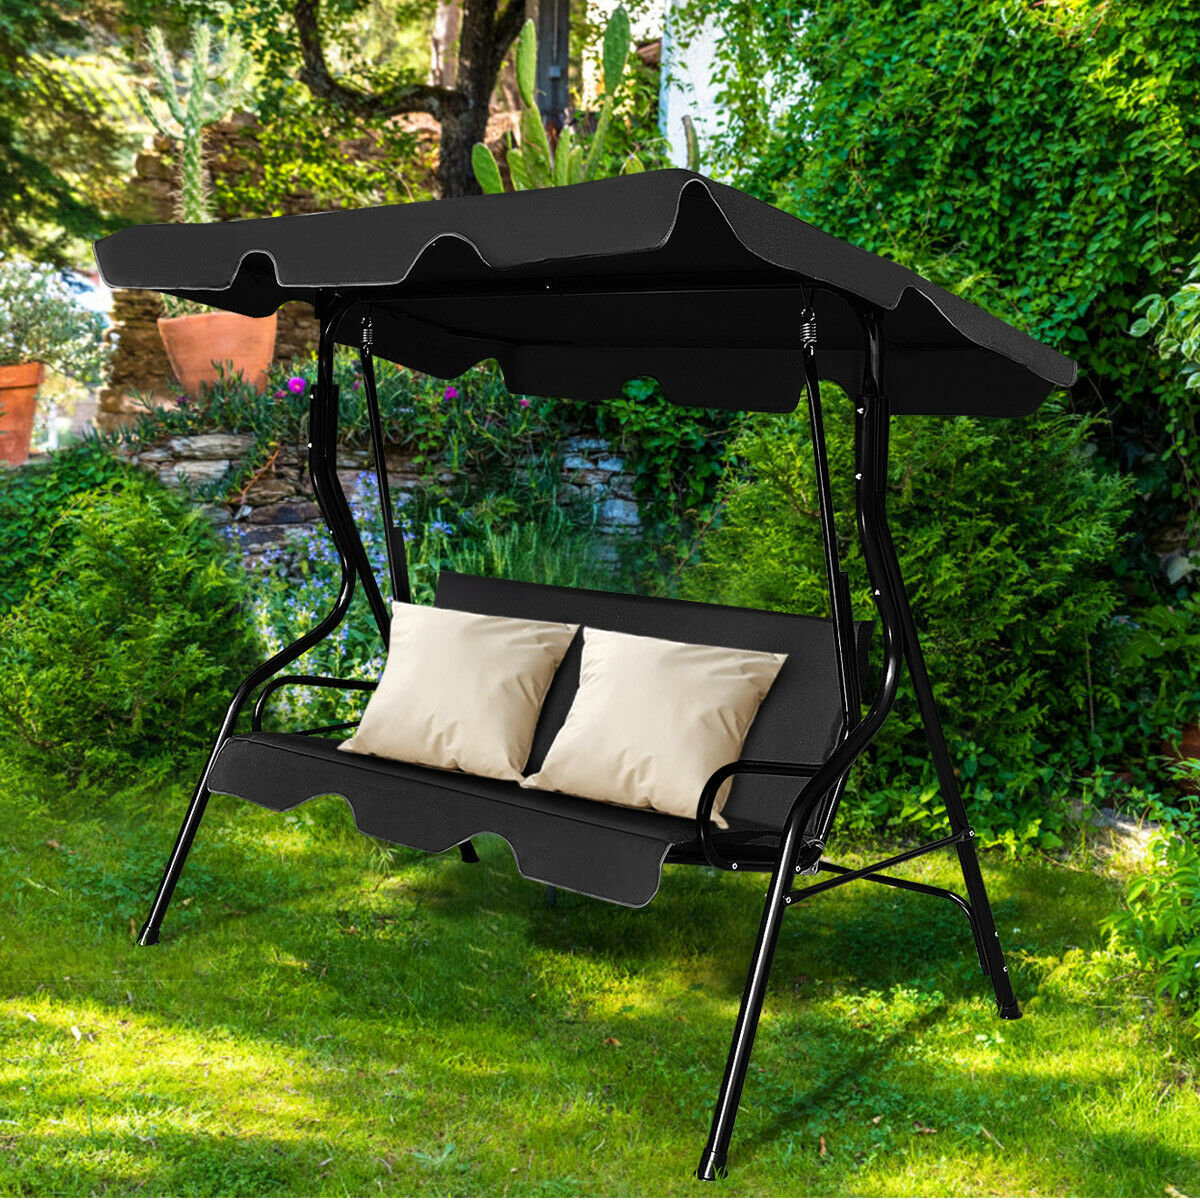 Costway 3 Seats Patio Canopy Swing Glider Hammock Cushioned Inside 3 Seats Patio Canopy Swing Gliders Hammock Cushioned Steel Frame (Image 6 of 25)